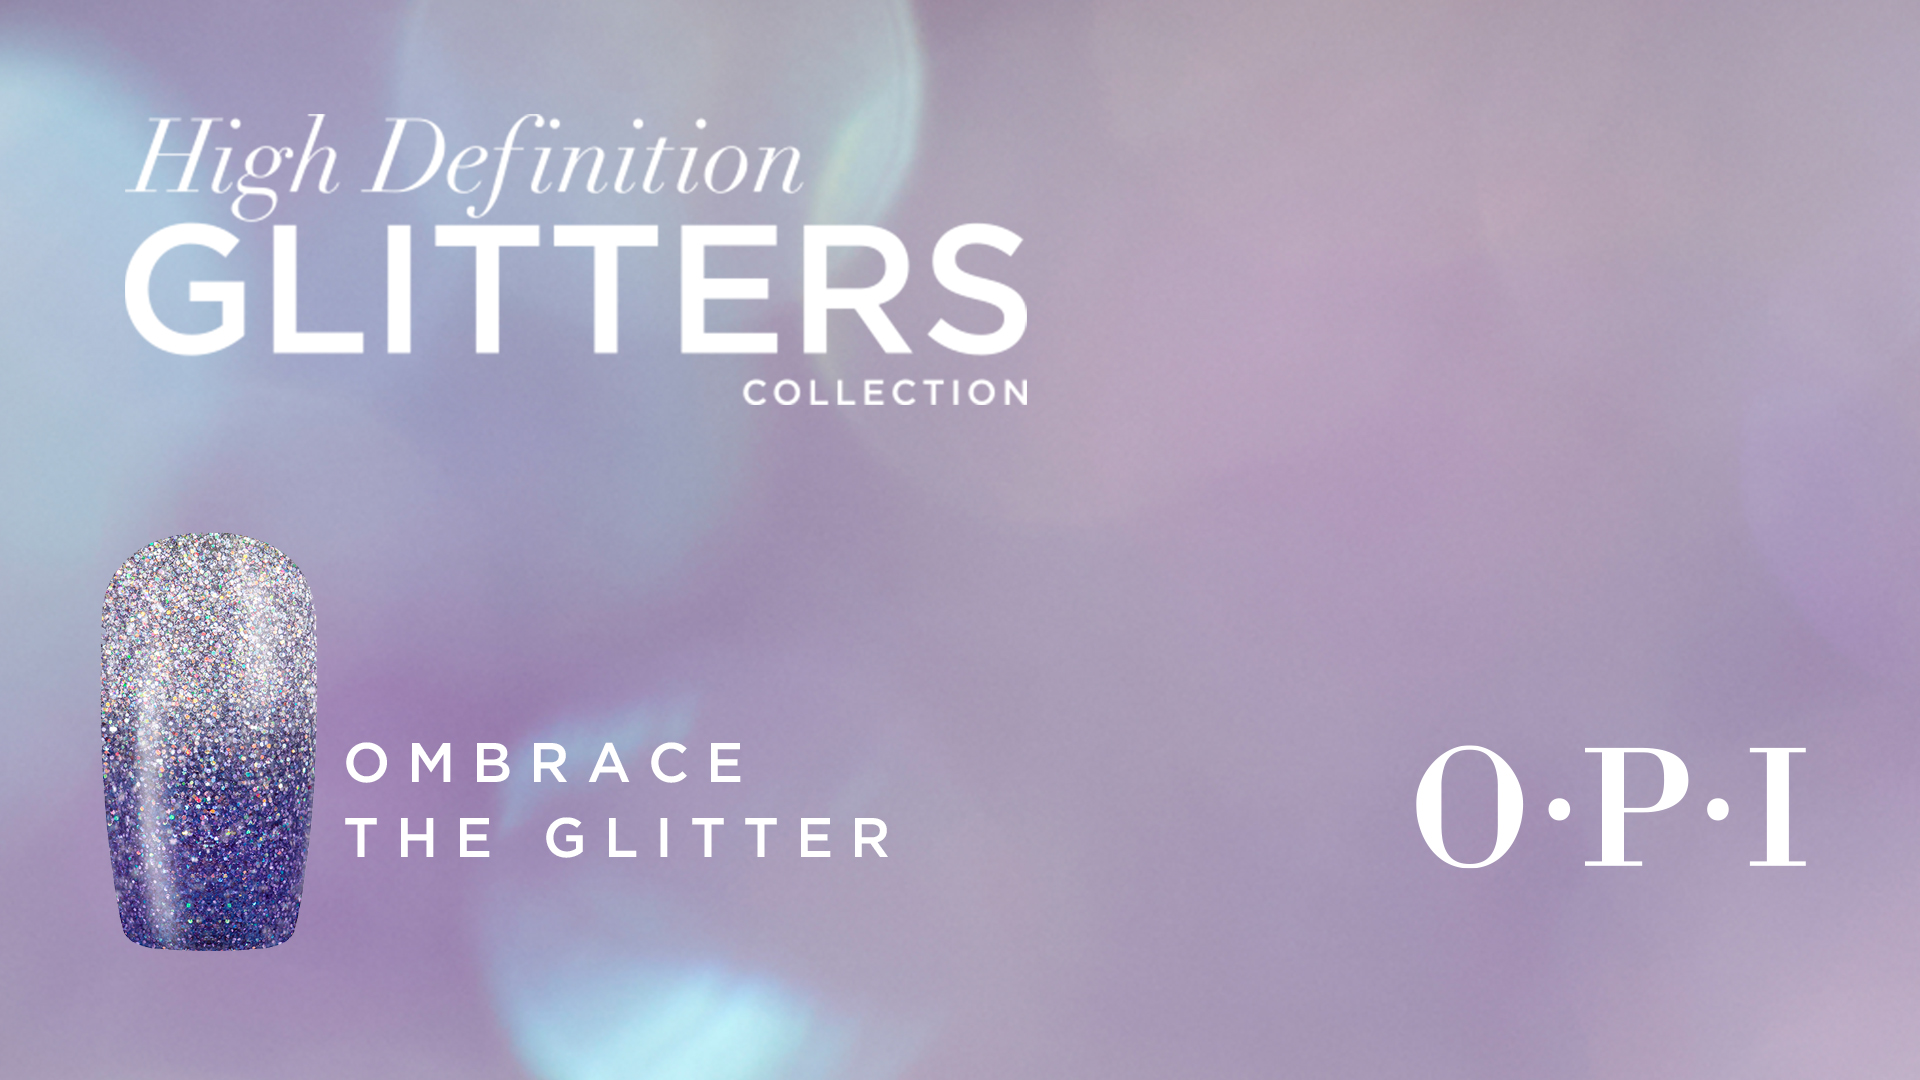 High Definition Glitters  Nail Art Ombrace the Glitters